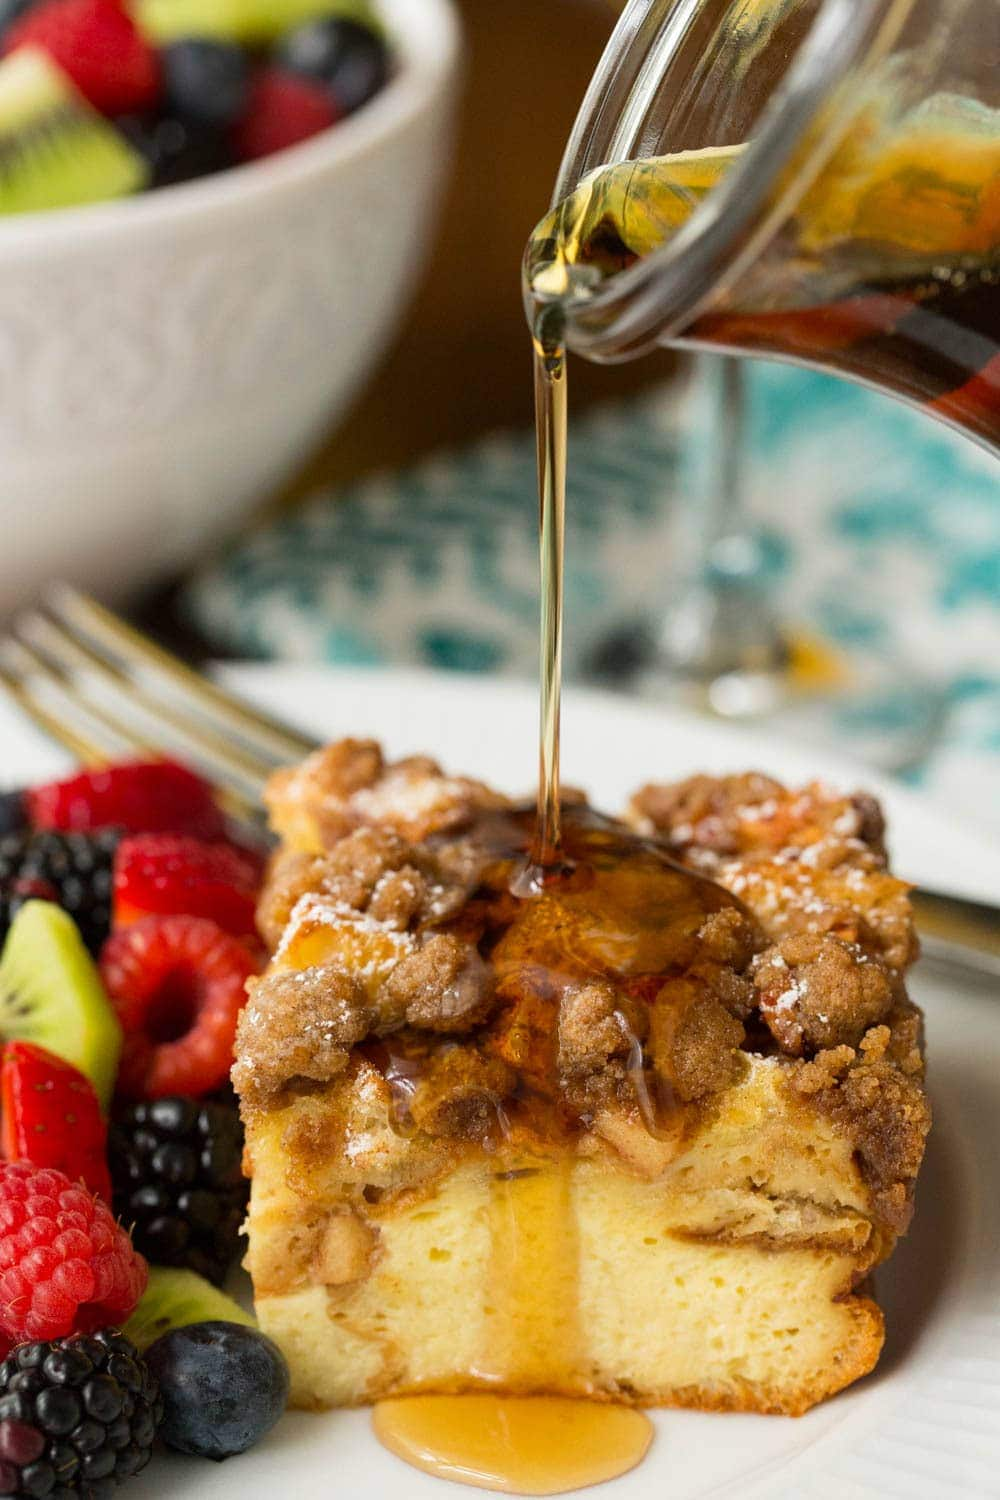 Cinnamon Apple French Toast Casserole - crazy delicious overnight casserole! Prep it at night and in the morning, breakfast is easy peasy! thecafesucrefarine.com